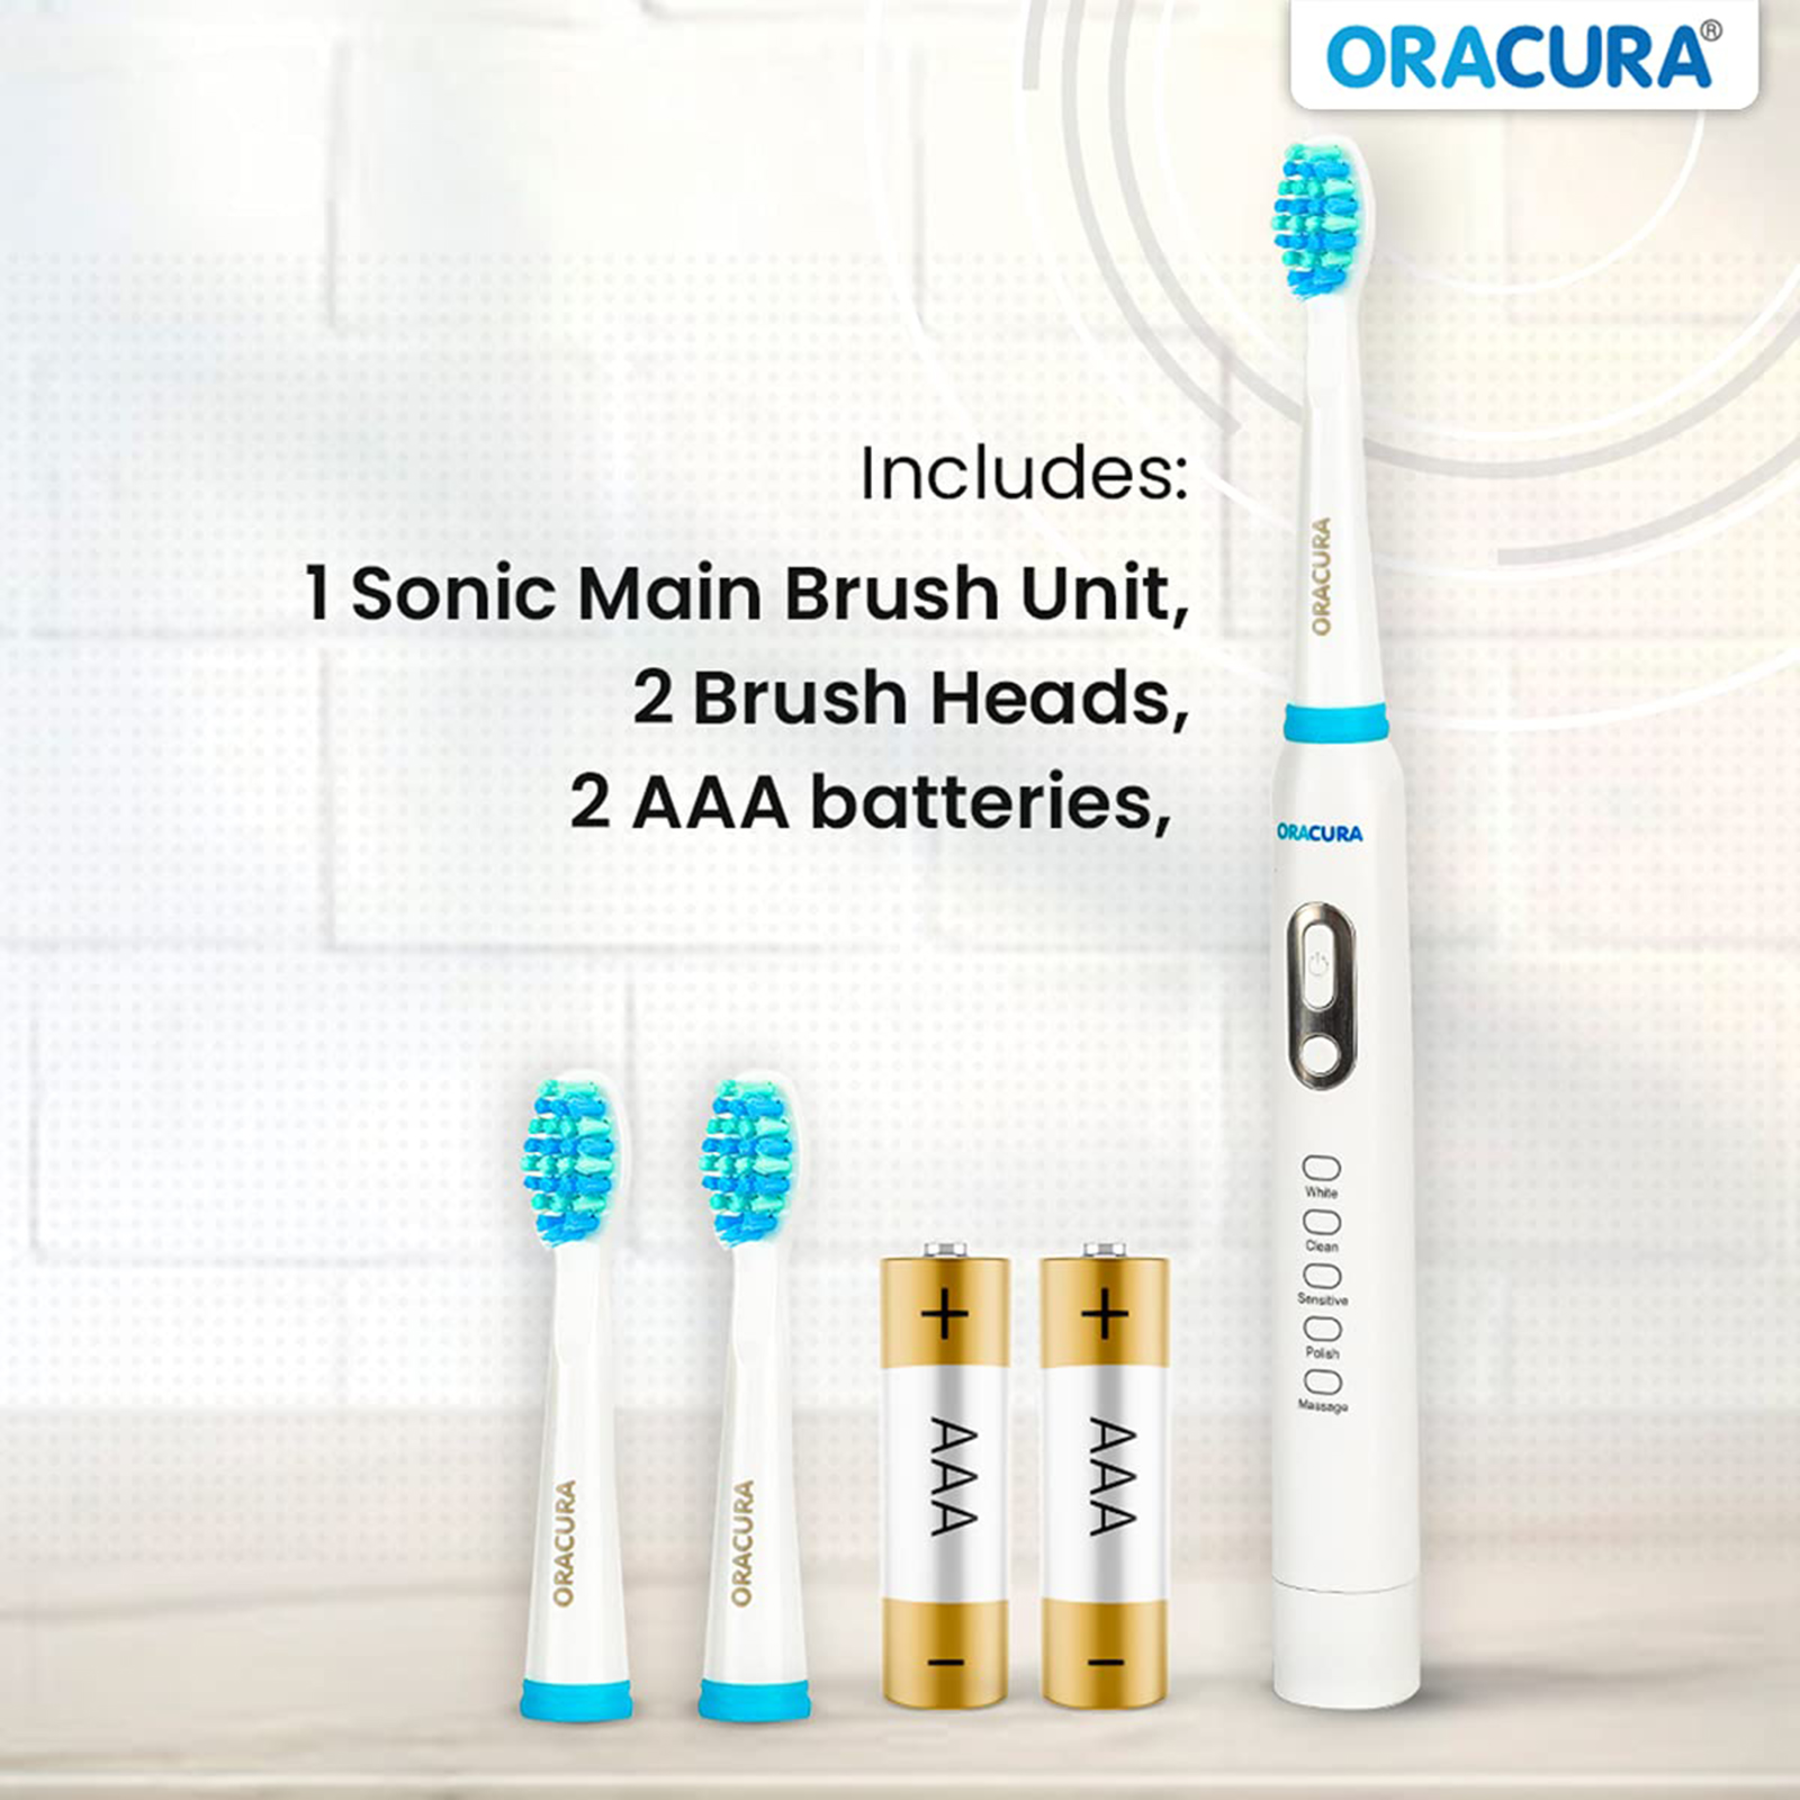 Oracura Electric Toothbrush For Unisex (Superior Gum Protection, SB100W, White )_4